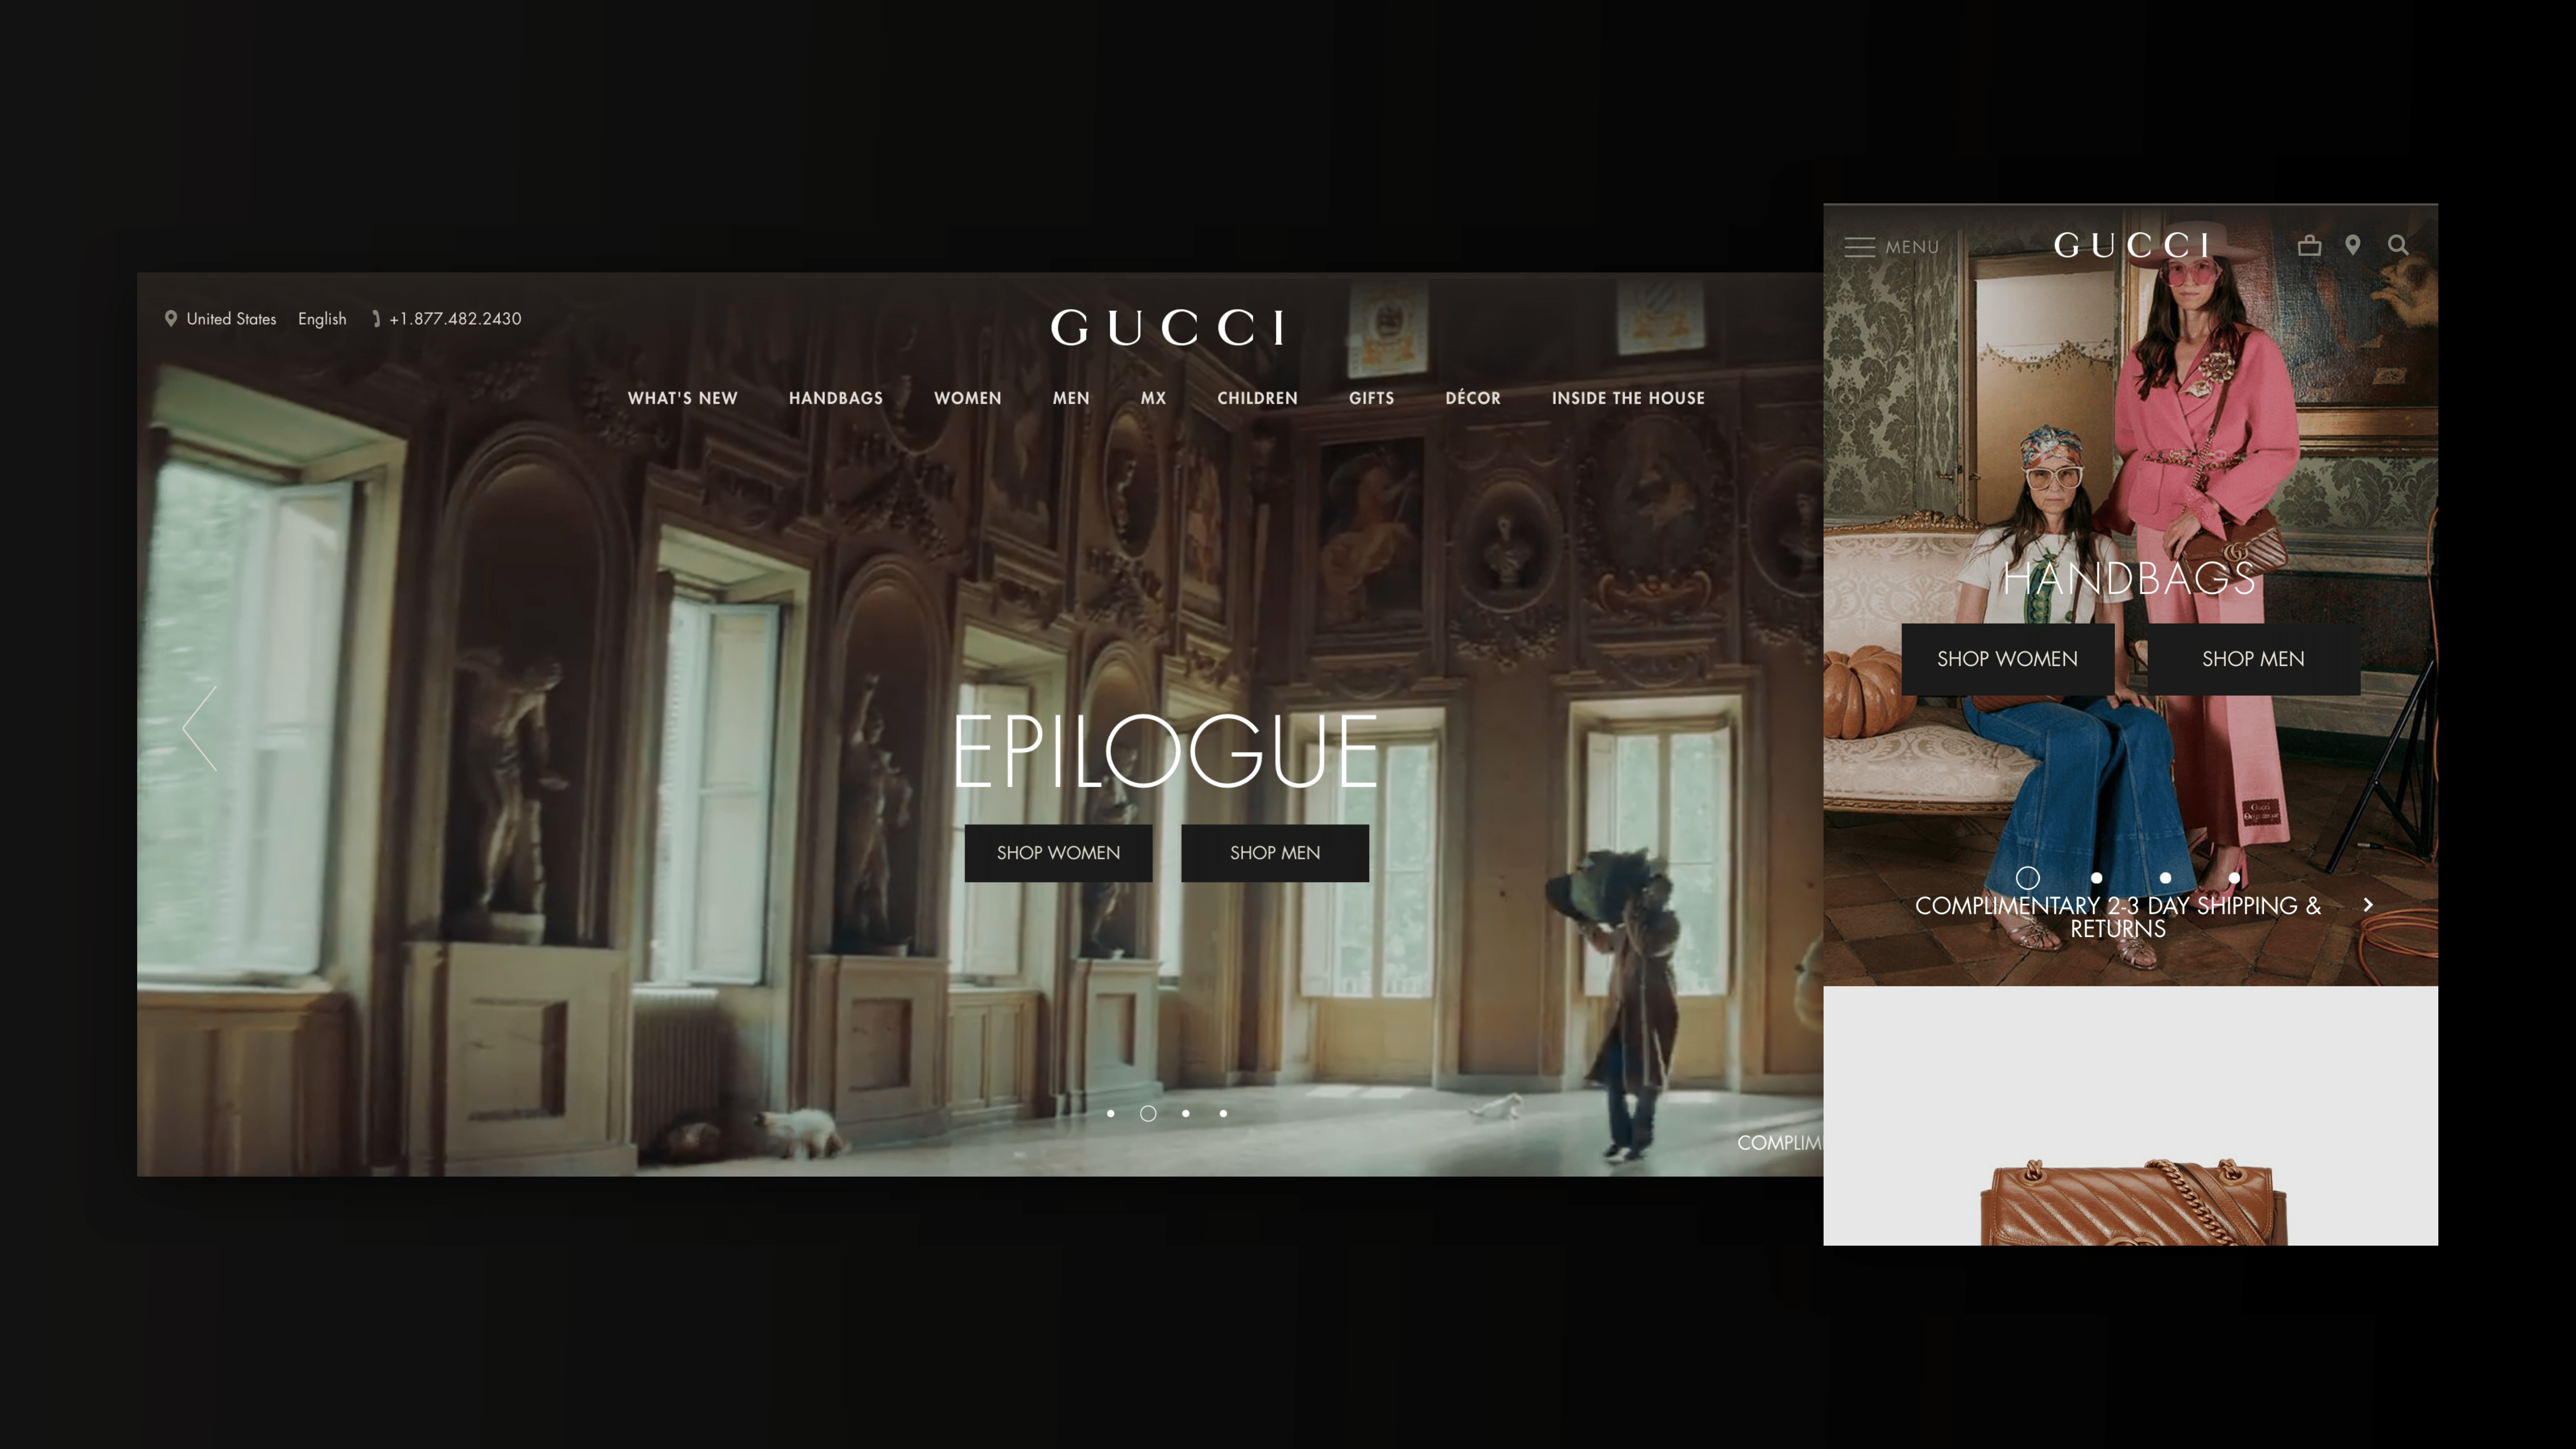 Digital agency on Gucci: Gucci's eCommerce Site: Optimized for Desktop & Mobile